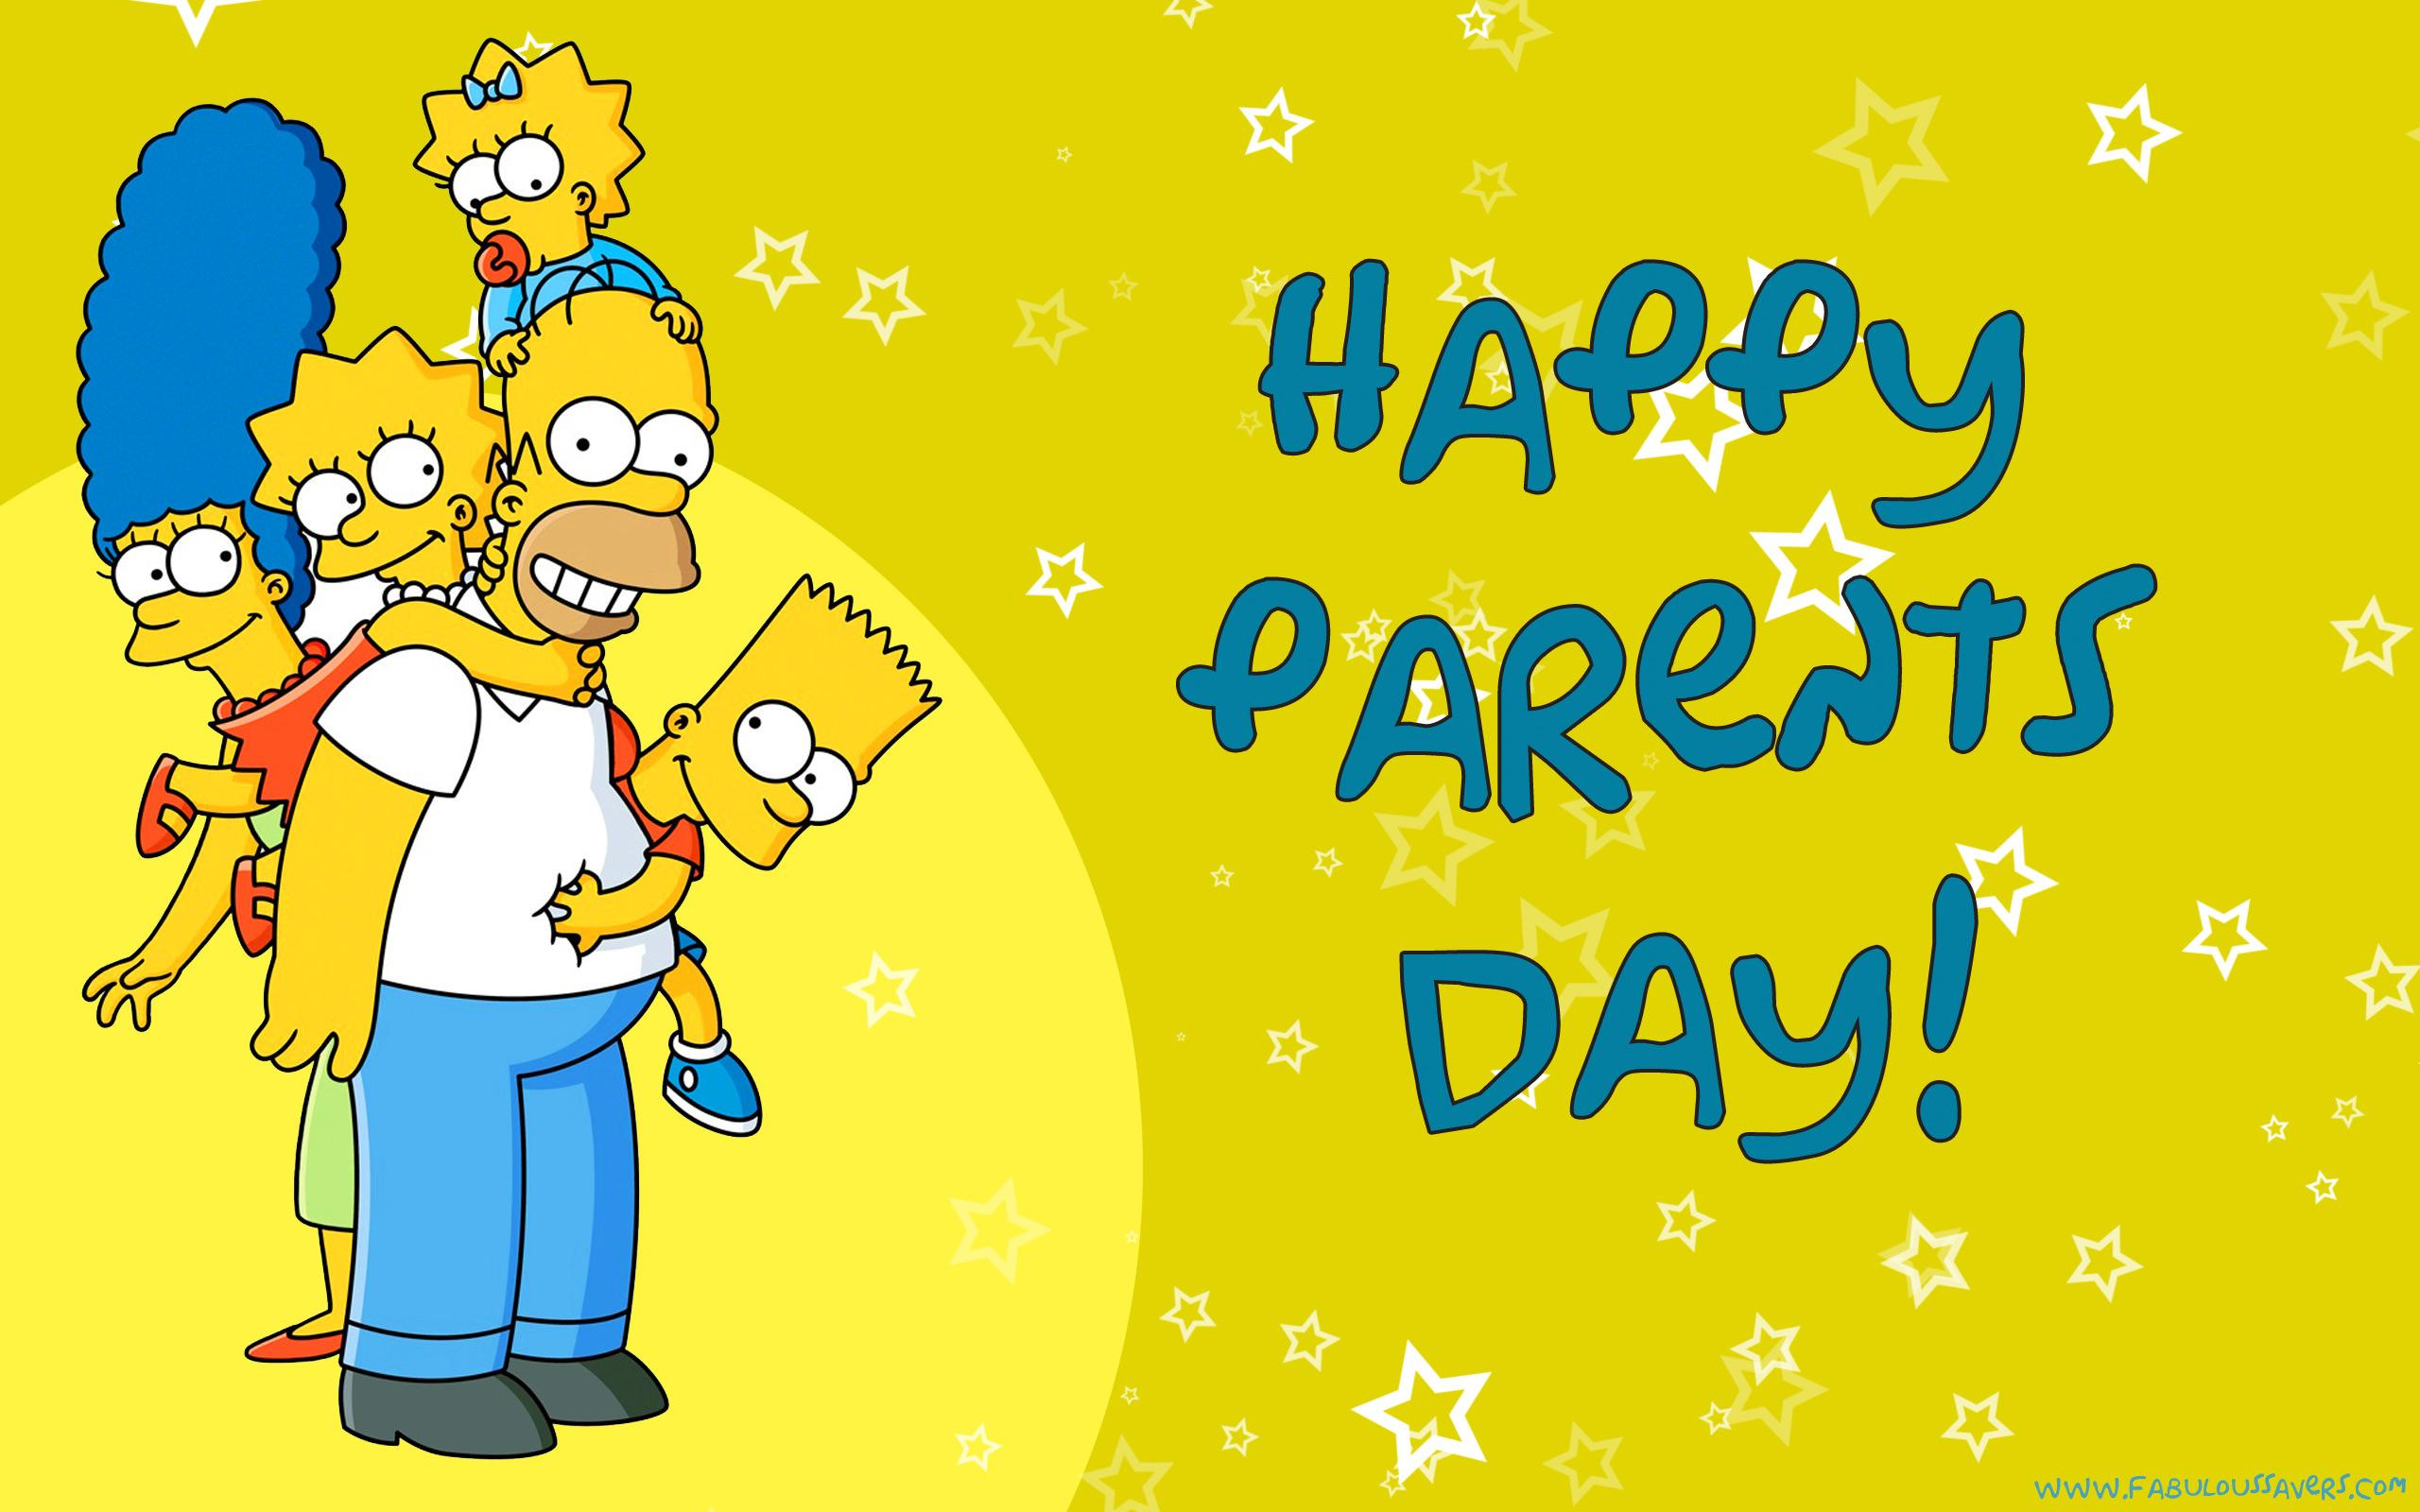 Happy Parents' Day wallpaper - 1184342